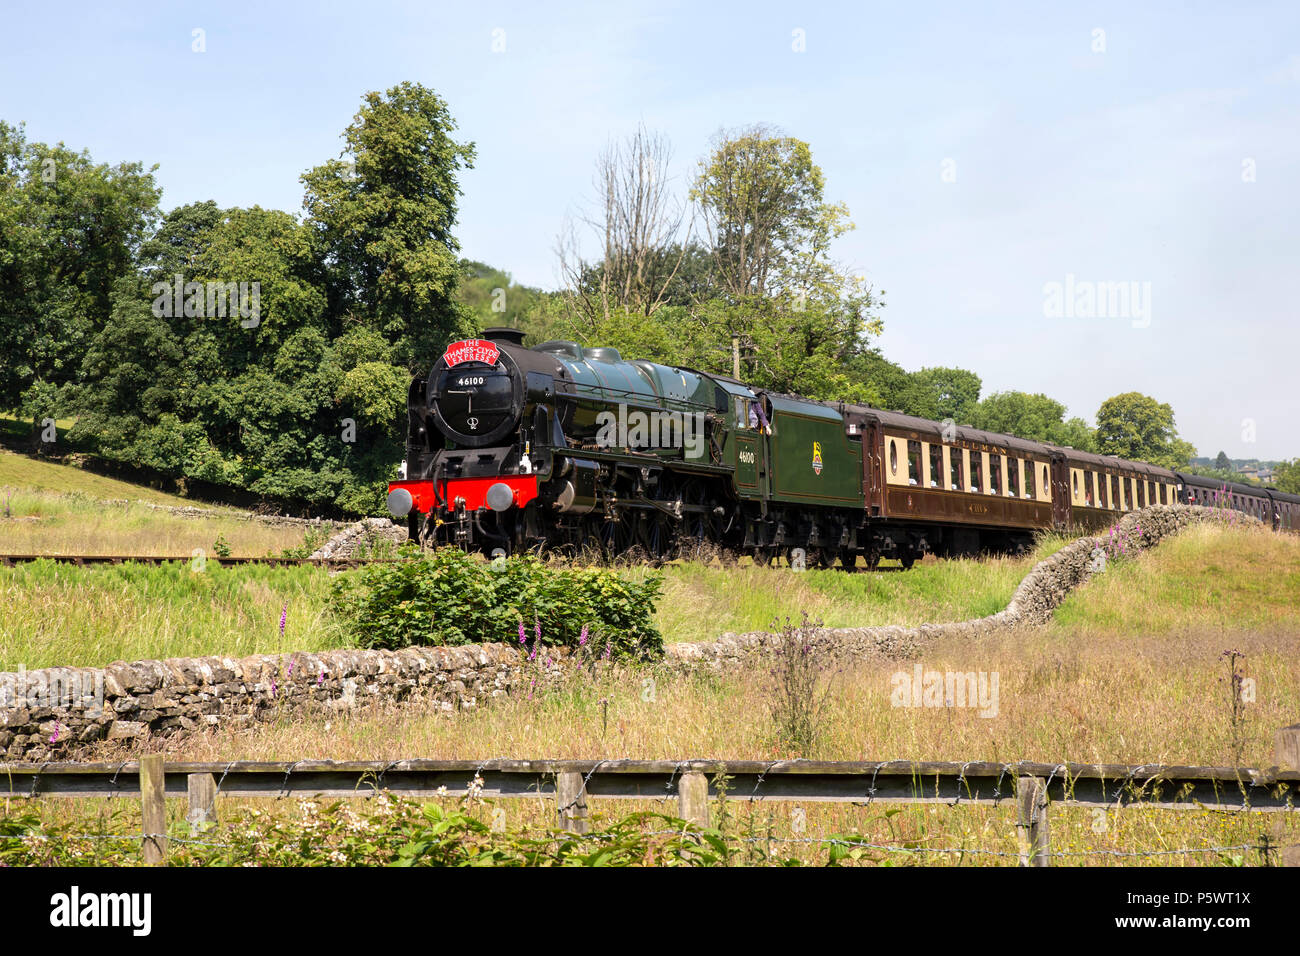 LMS steam locomotive Royal Scot class 6100 hauling a pullman train on the Keighley and Worth Valley heritage line during the 50th Anniversary gala - Stock Image